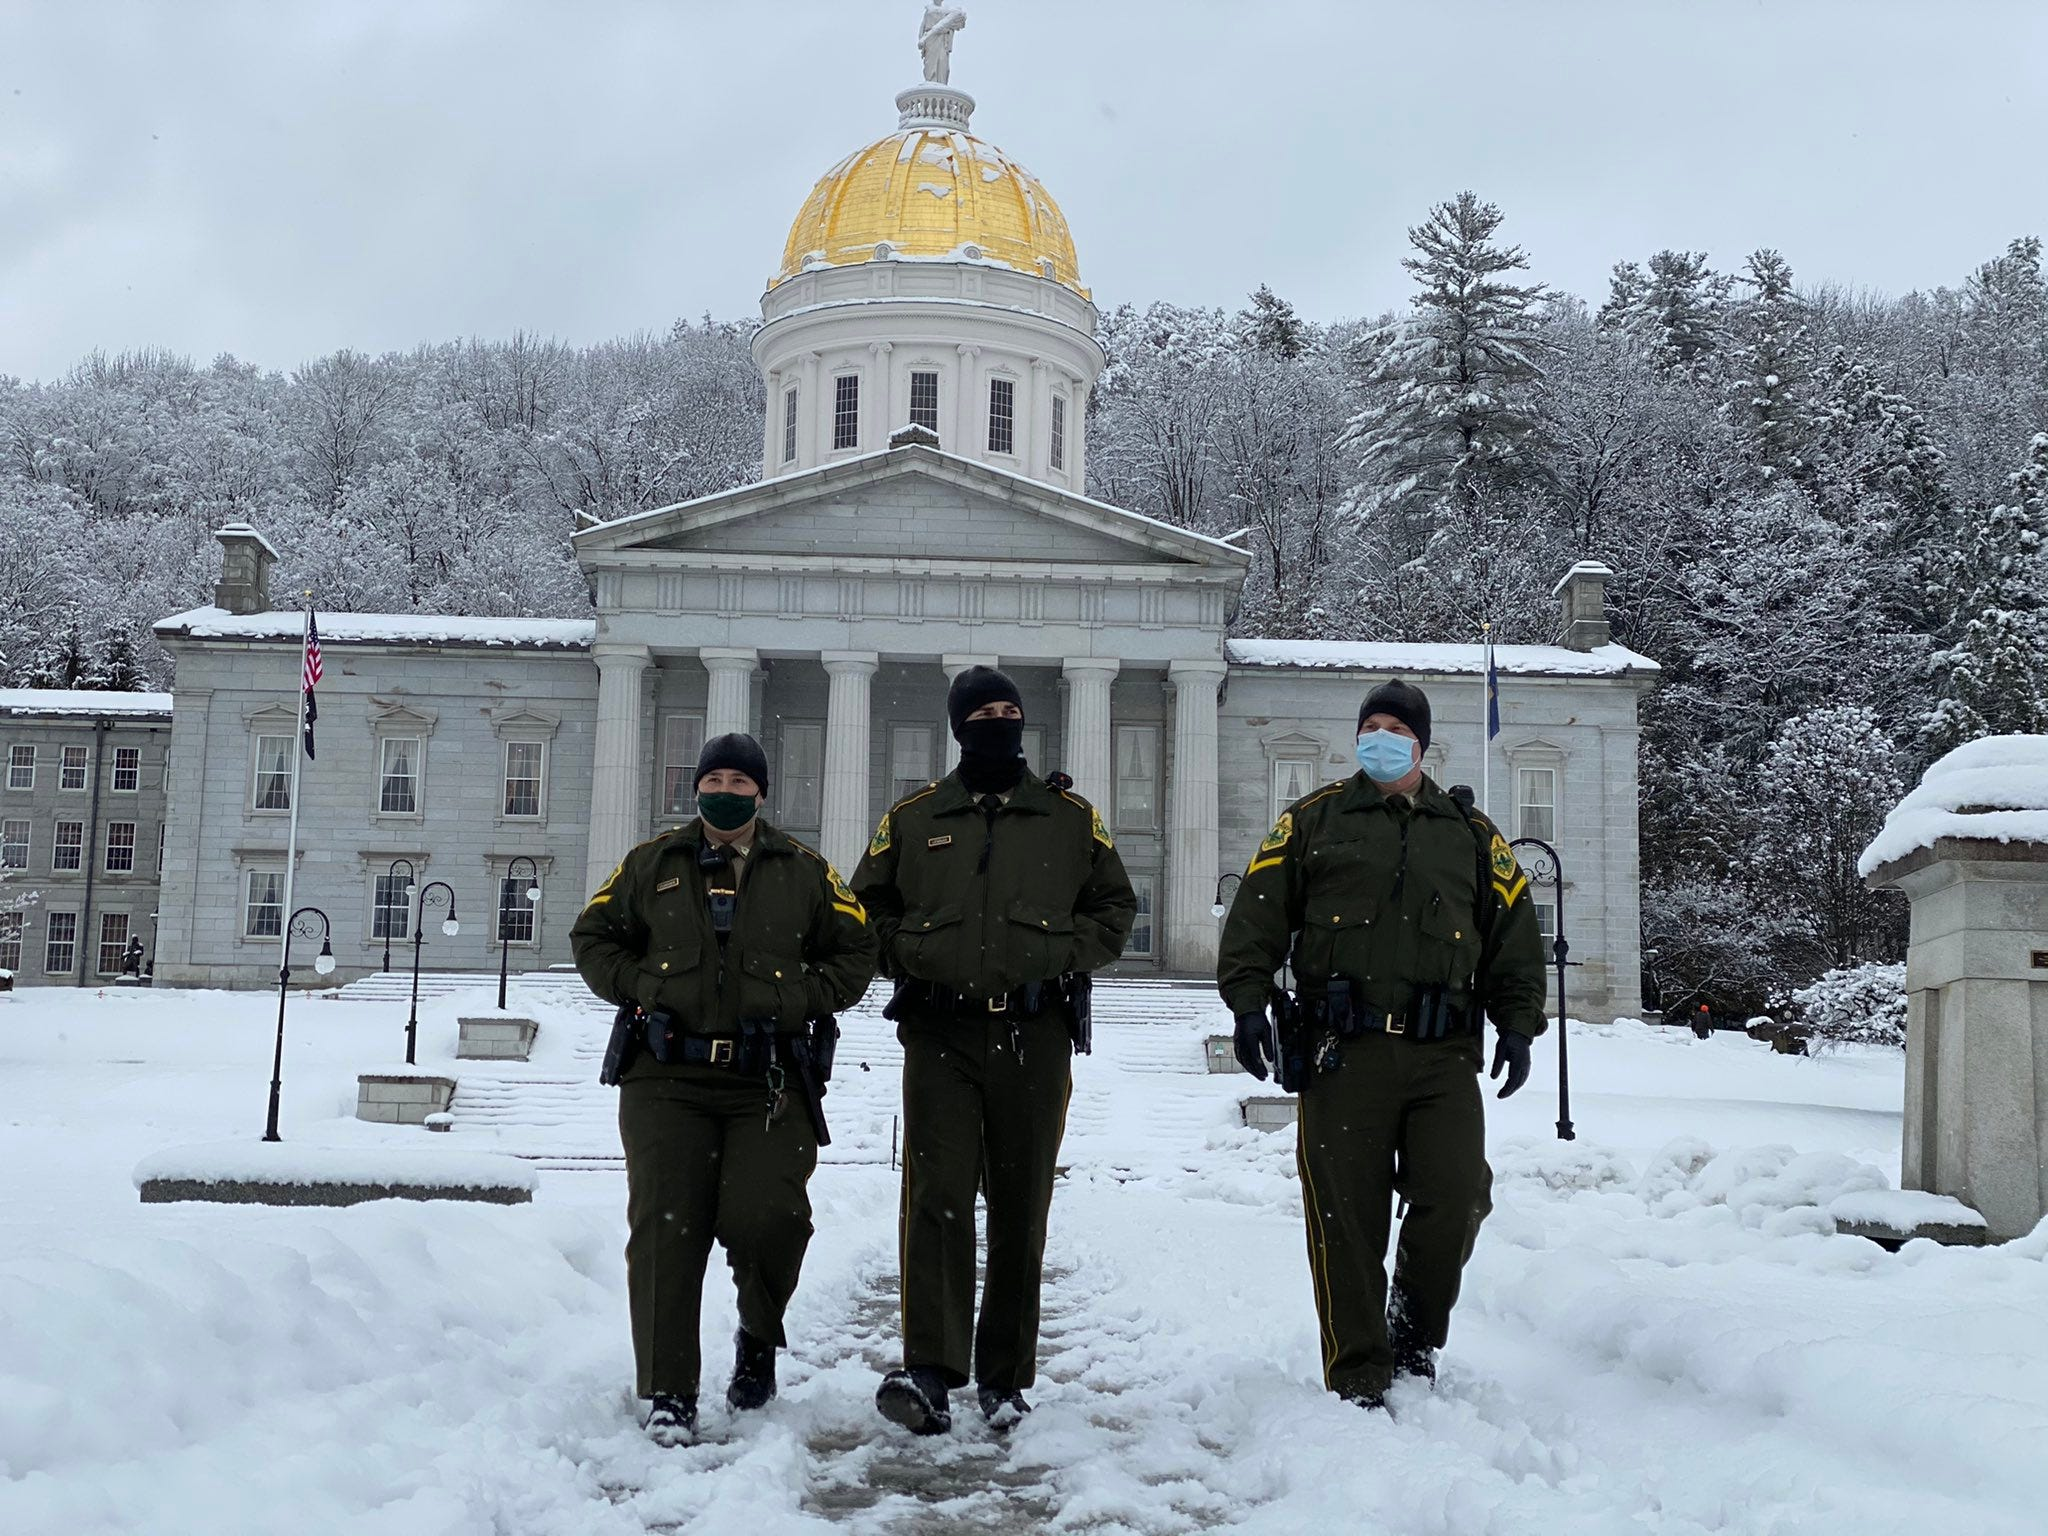 Multiple patrols of state troopers walk the Statehouse grounds in Montpelier, Vt., on Sunday, Jan. 17, 2021.